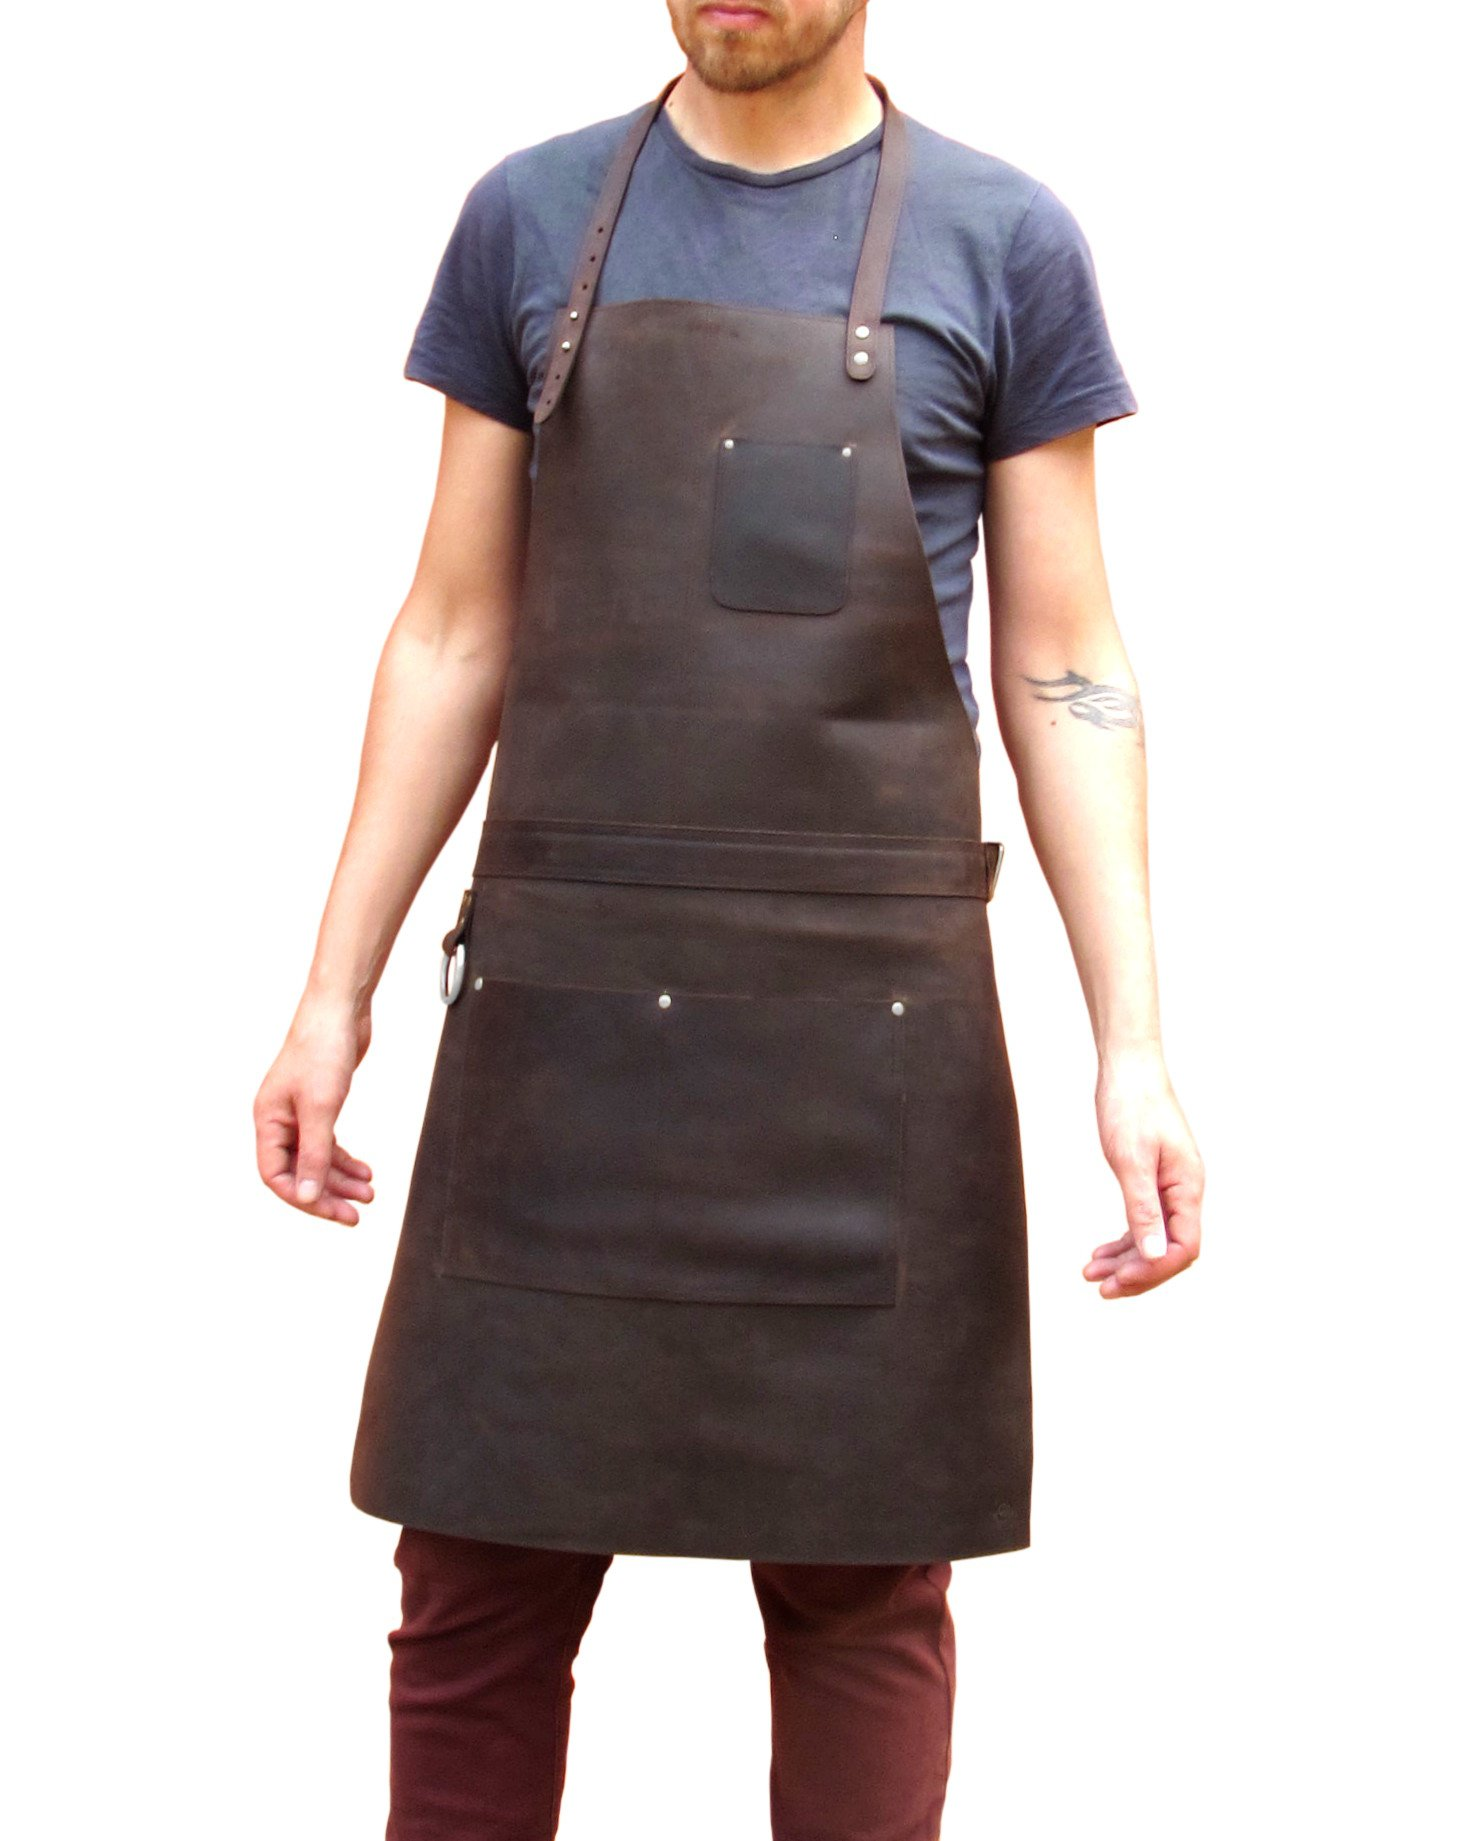 One Leaf Leather Apron (Chef, Butcher, Metalworker, Carpenter) (Silver Color Hardware) by One Leaf